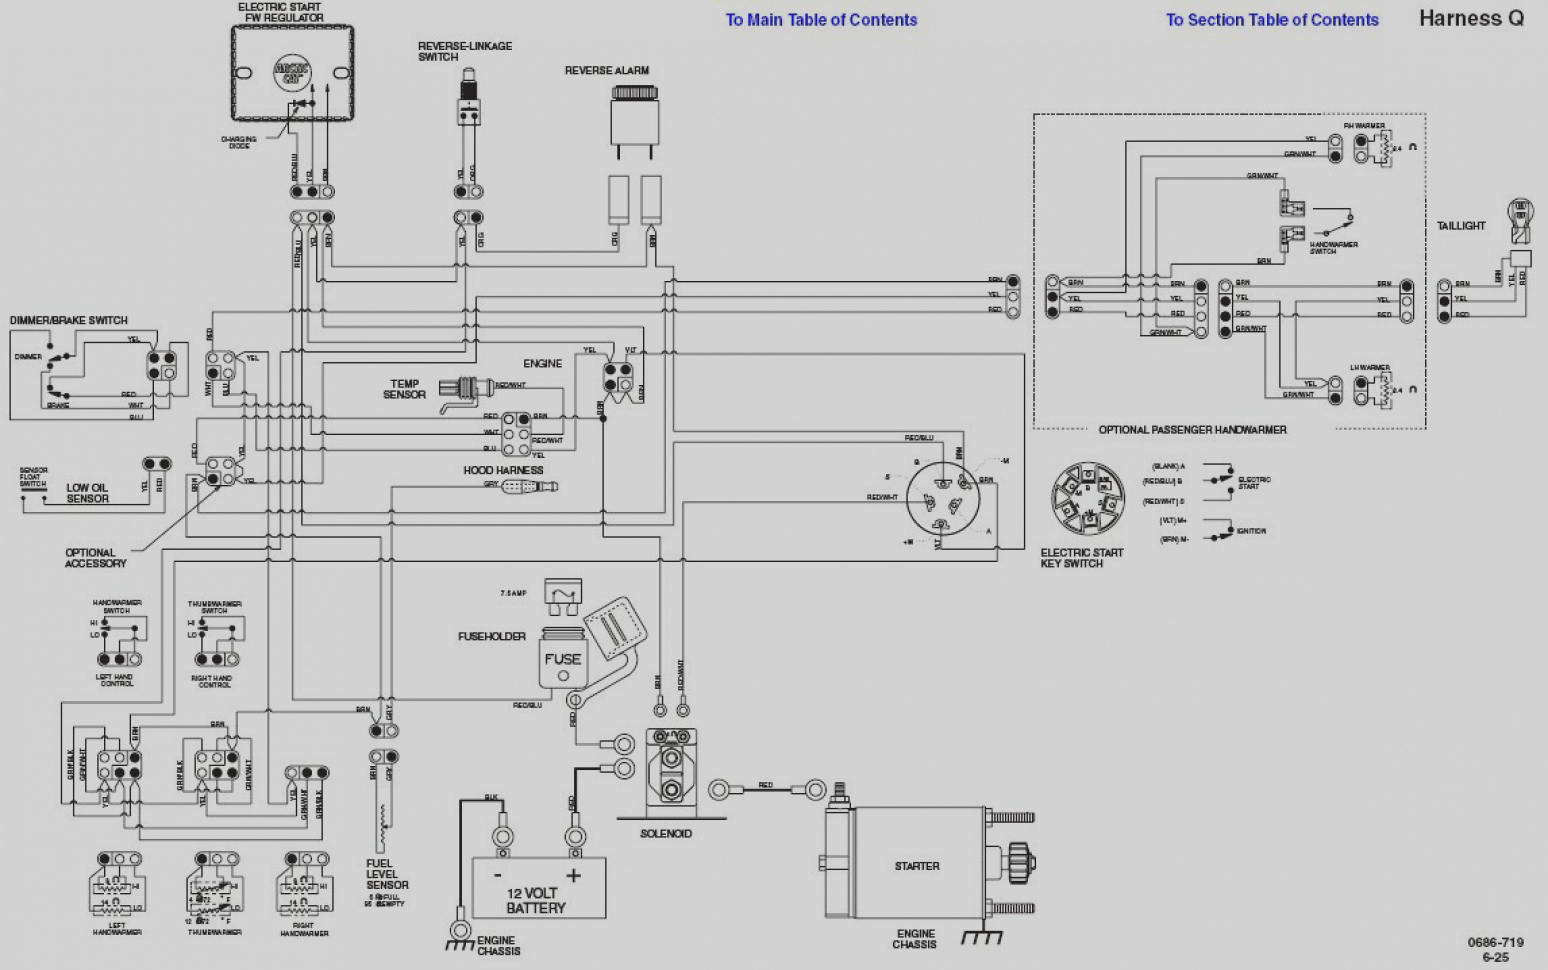 DIAGRAM] 2011 Polaris Ranger Wiring Diagram FULL Version HD Quality Wiring  Diagram - B6500FUSER1294.SWEVAT.ITSwevat